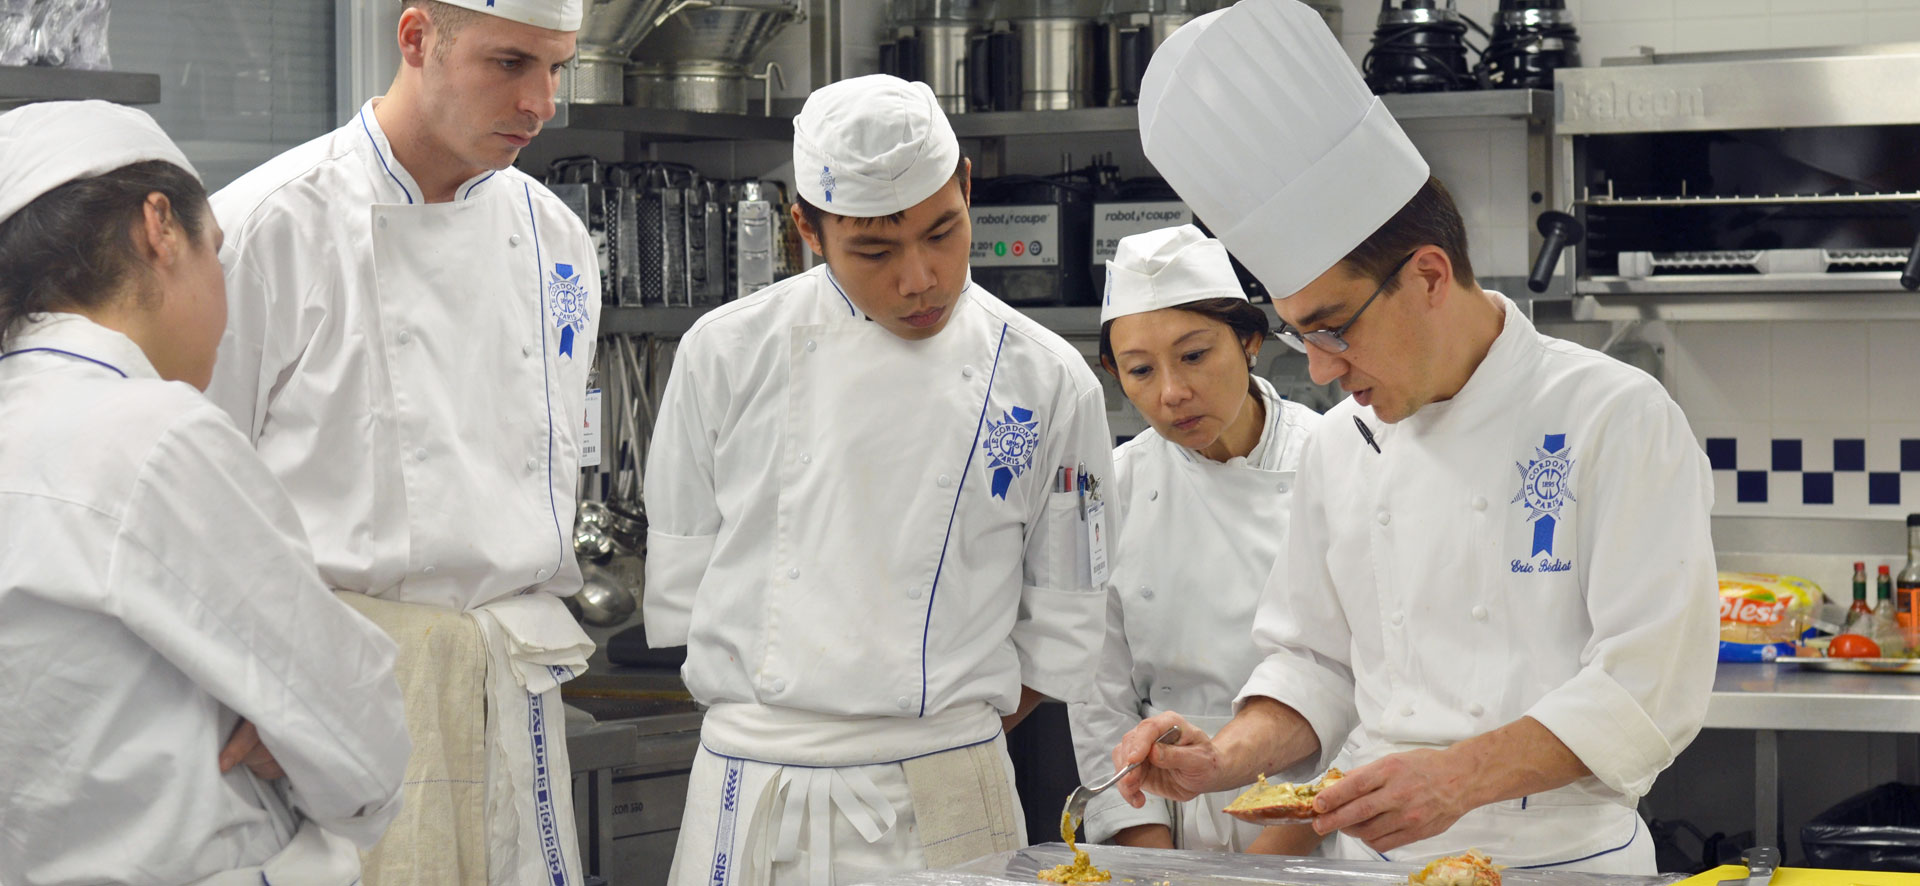 Le Cordon Bleu explain how to become a Chef